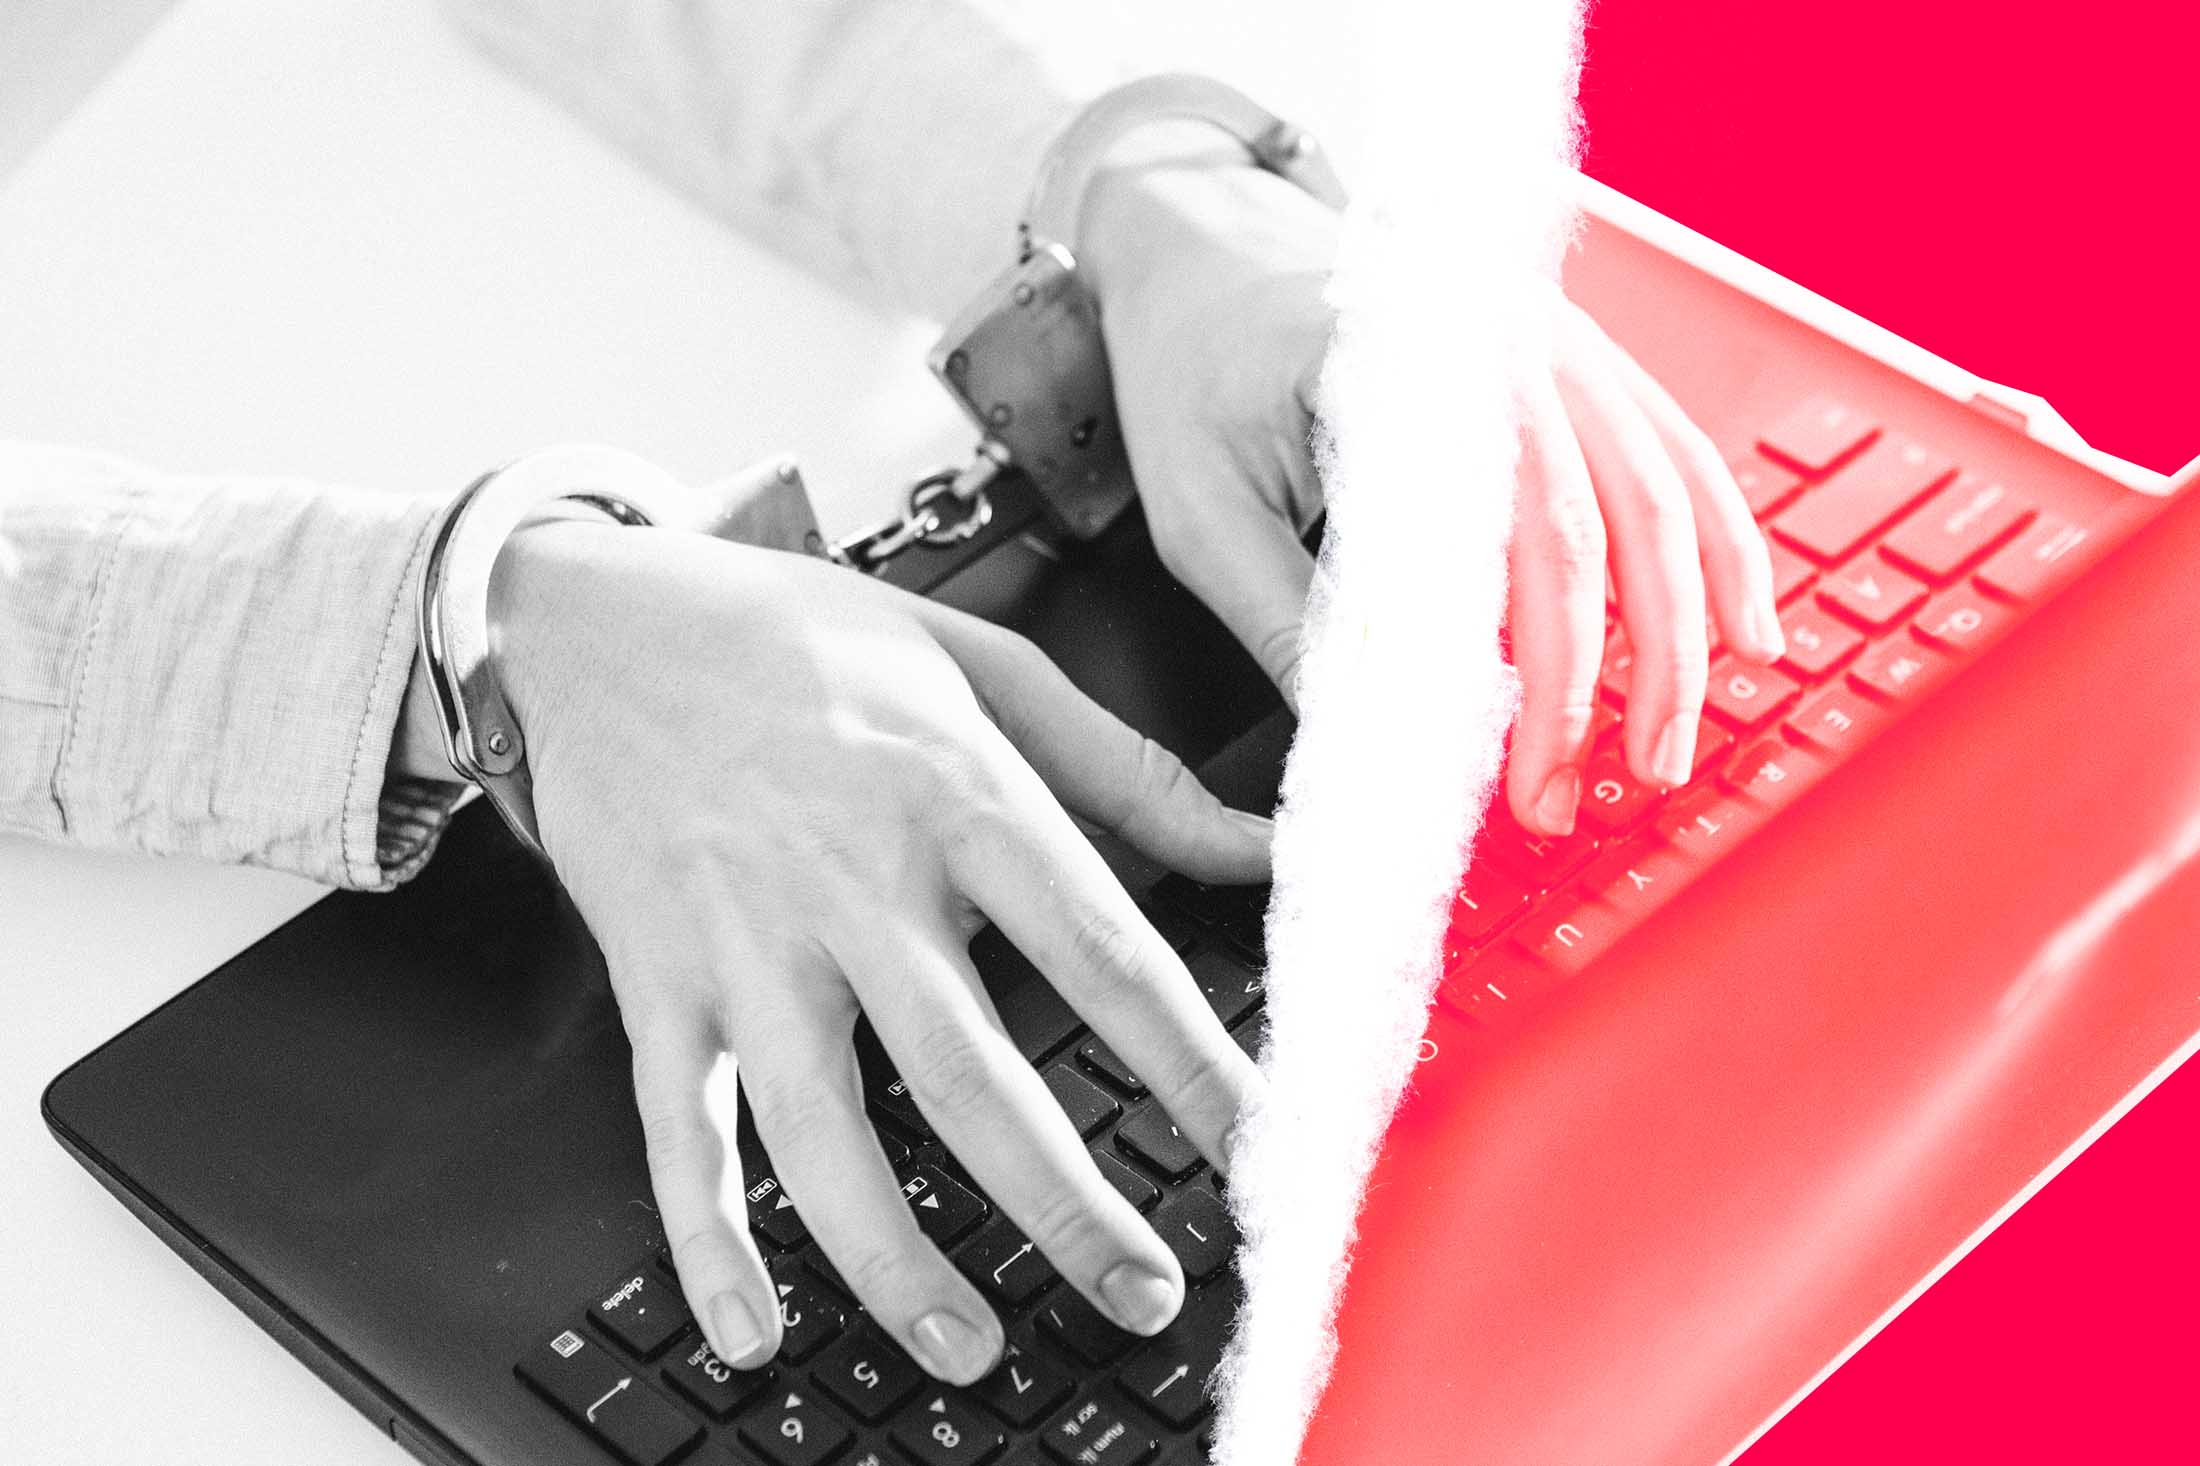 Photo illustration of handcuffed hands typing on a laptop, with a tear running through the center of the image.